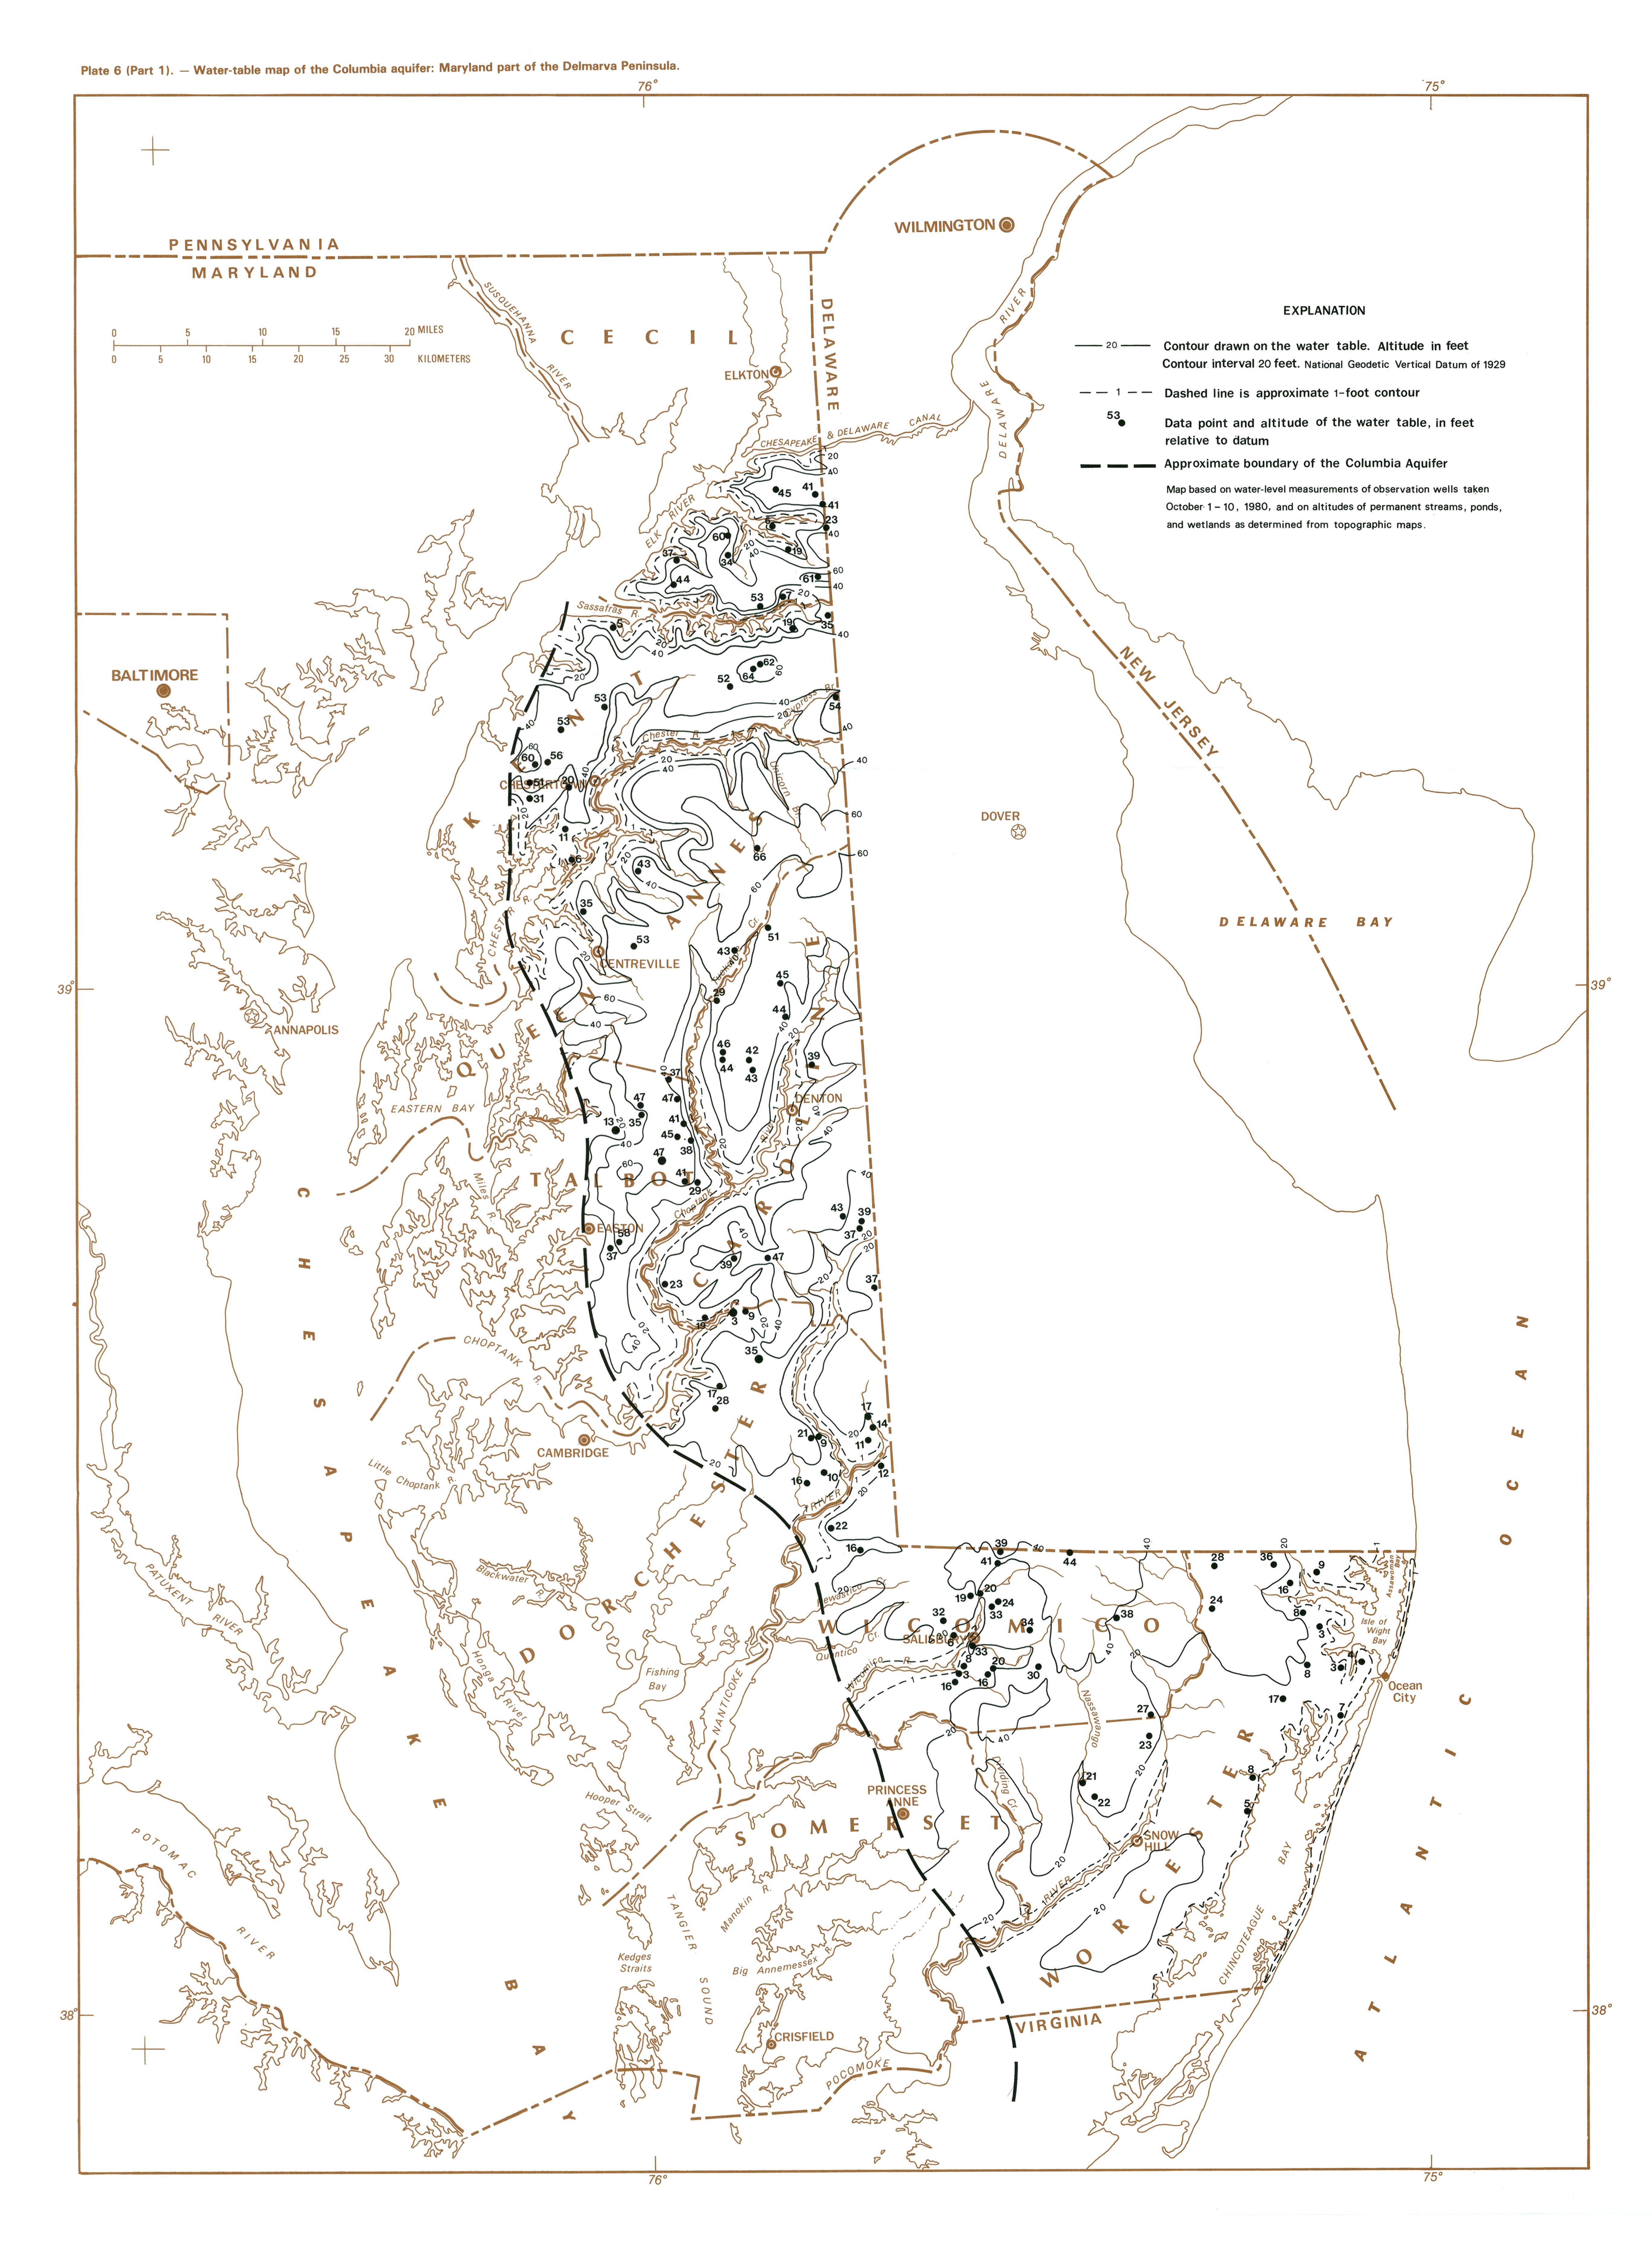 Water Table Map Of The Columbia Aquifer Maryland Part Of